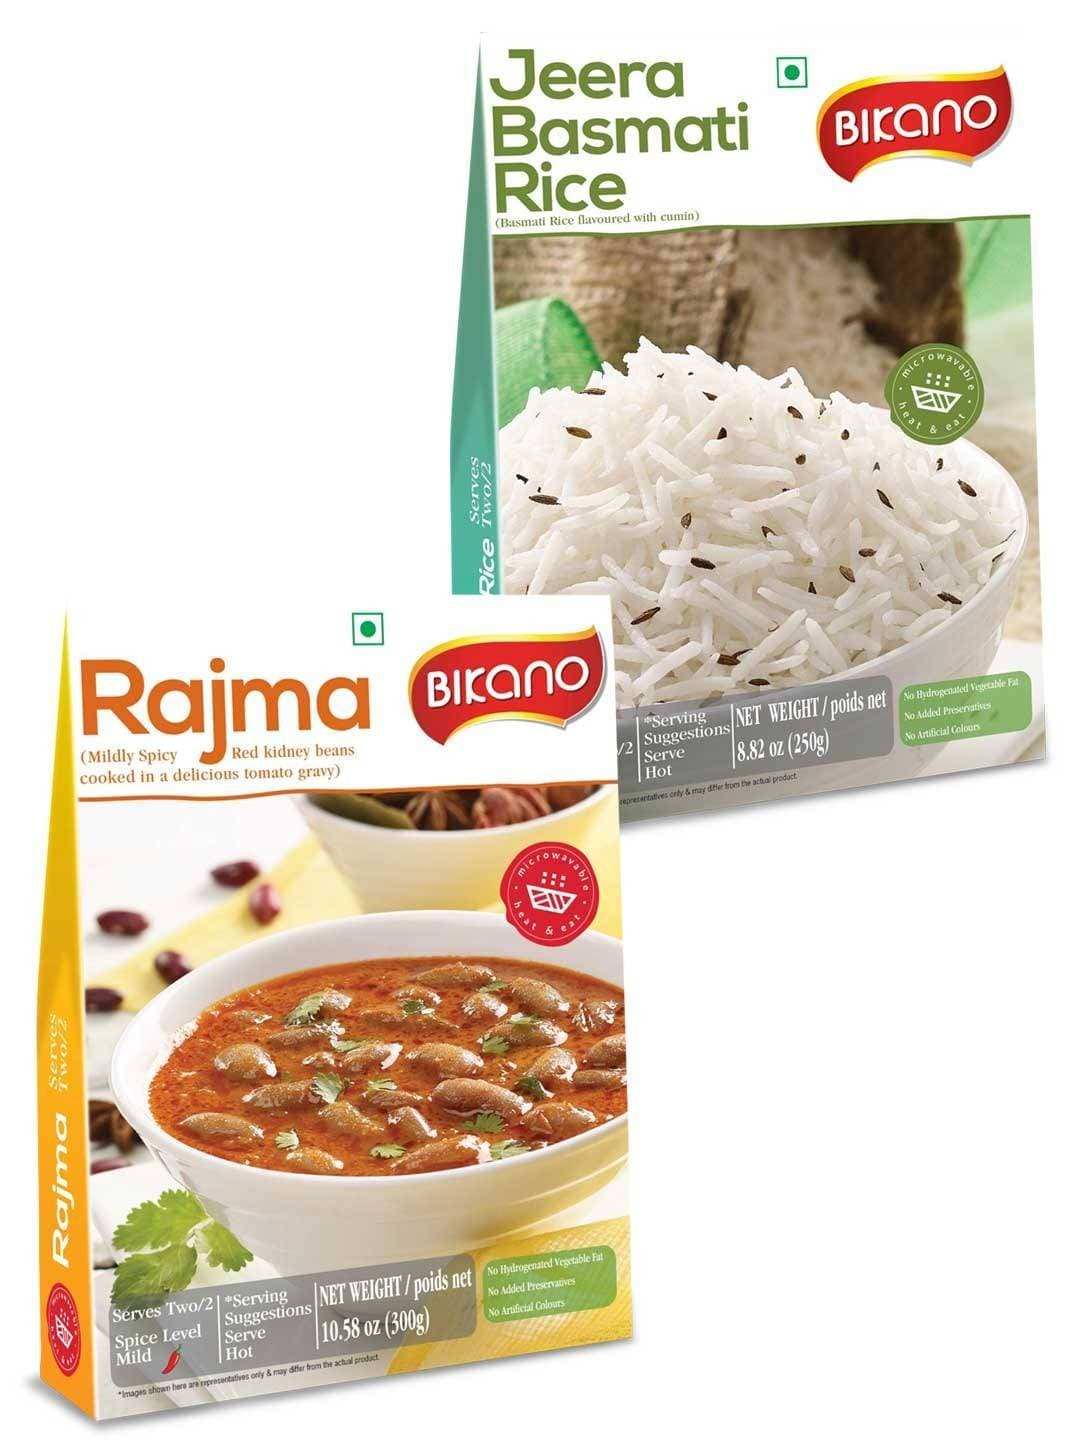 Bikano Rajma And Jeera rice